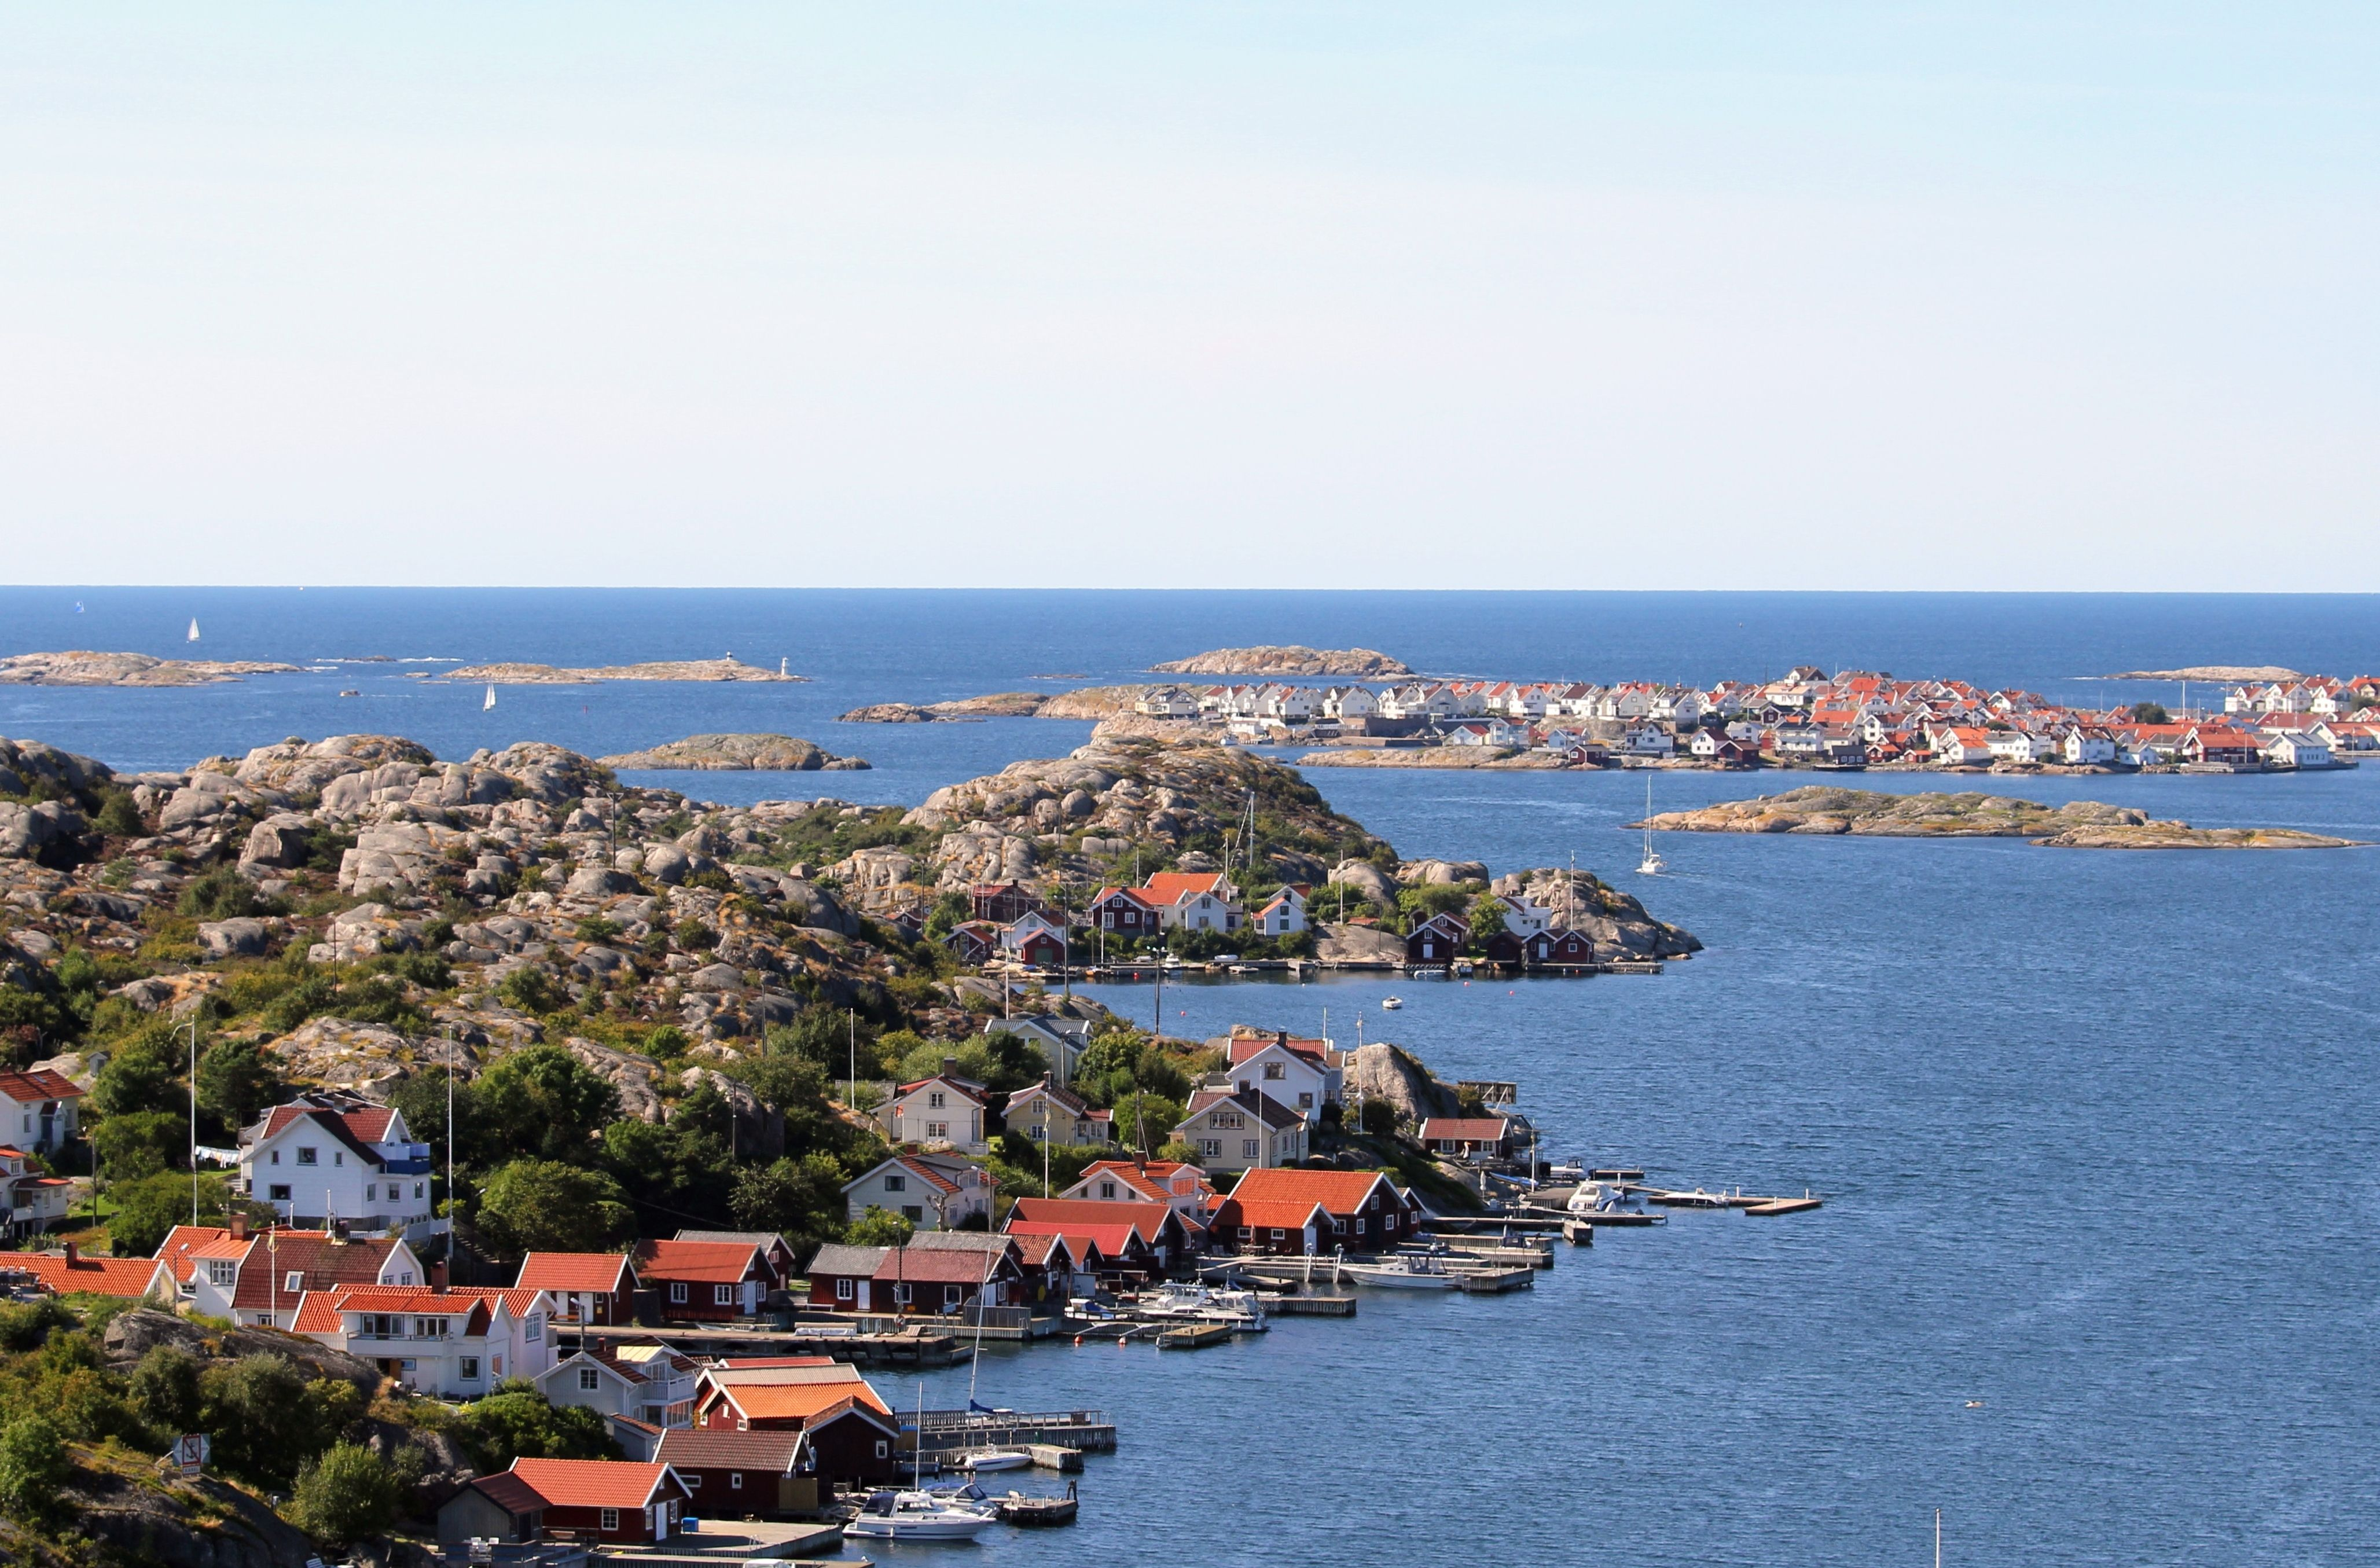 Tjorn island Sweden <3 My ancestors hail from here, and surrounding areas